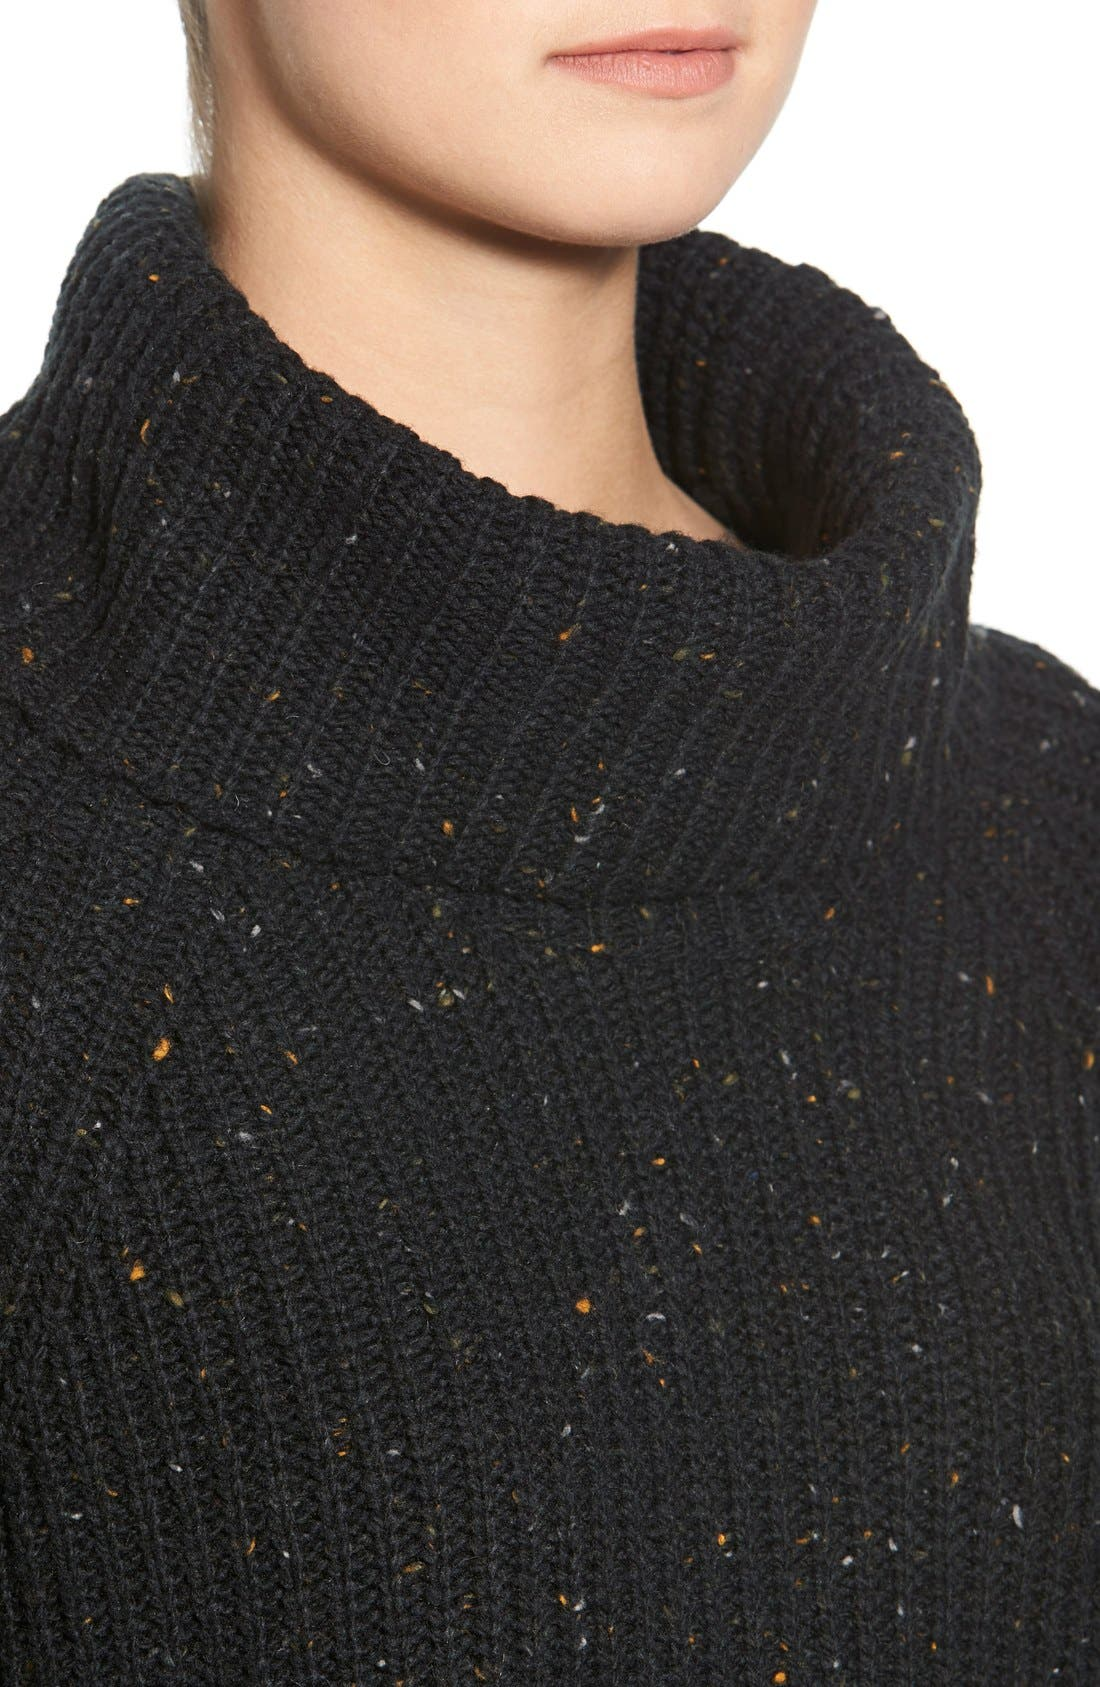 Turtleneck Sweater,                             Alternate thumbnail 3, color,                             001